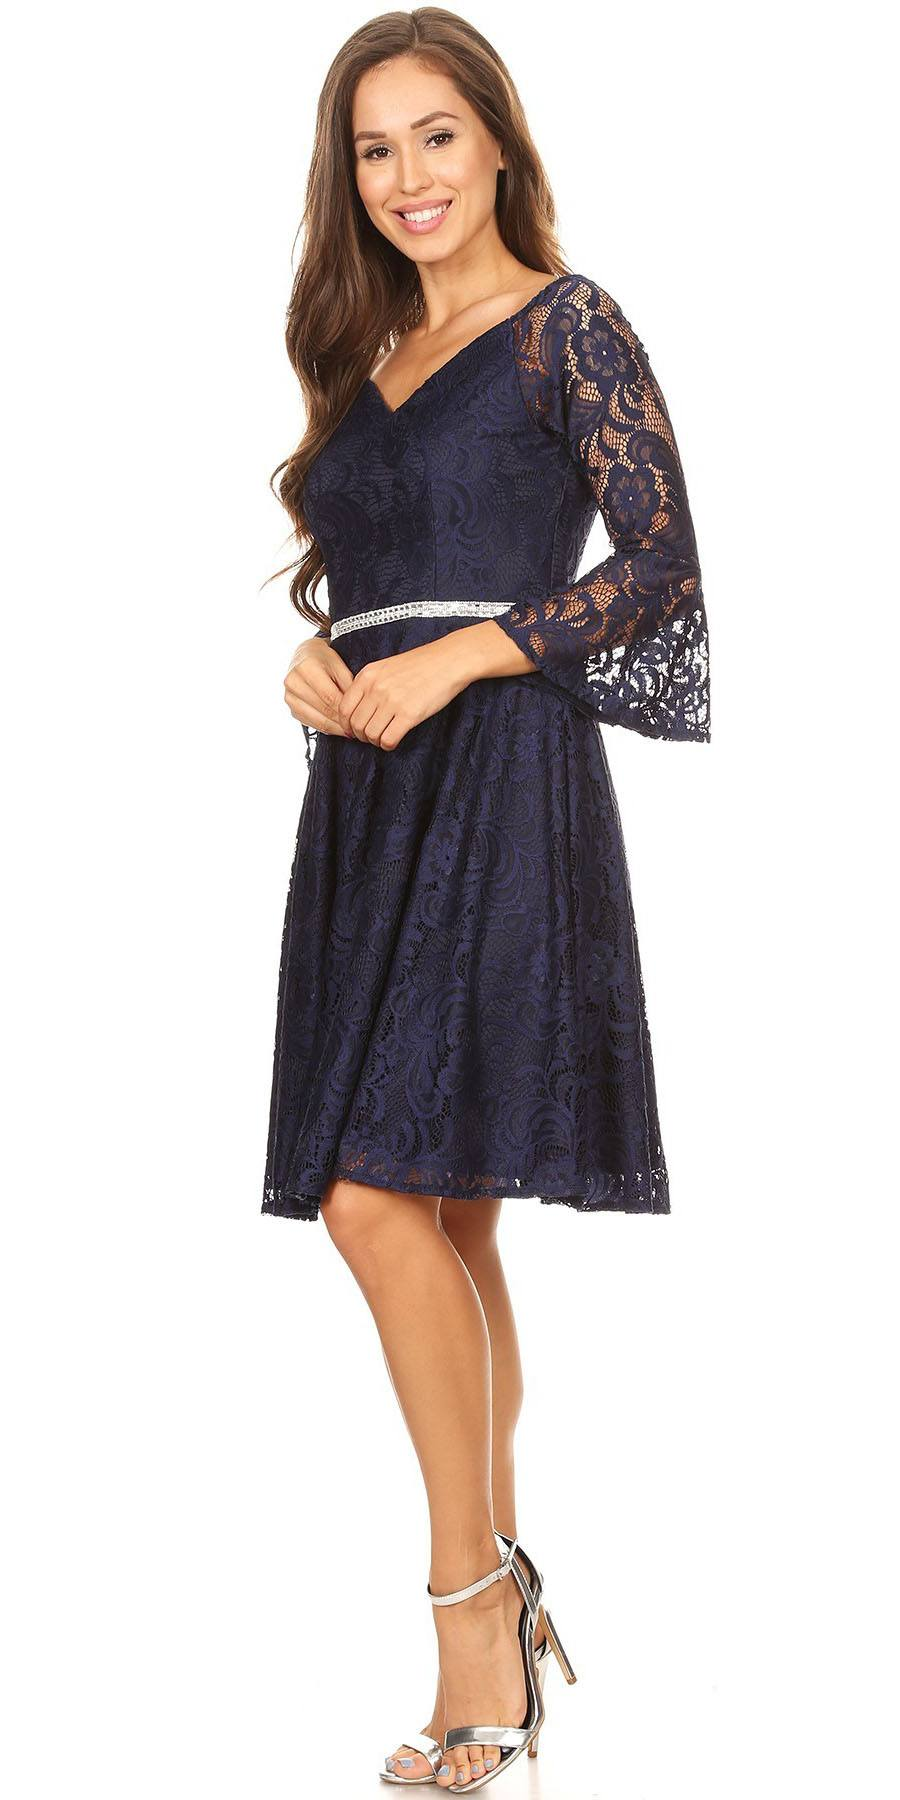 Lace V-Neck Wedding Guest Dress with Bell Sleeves Navy Blue ...